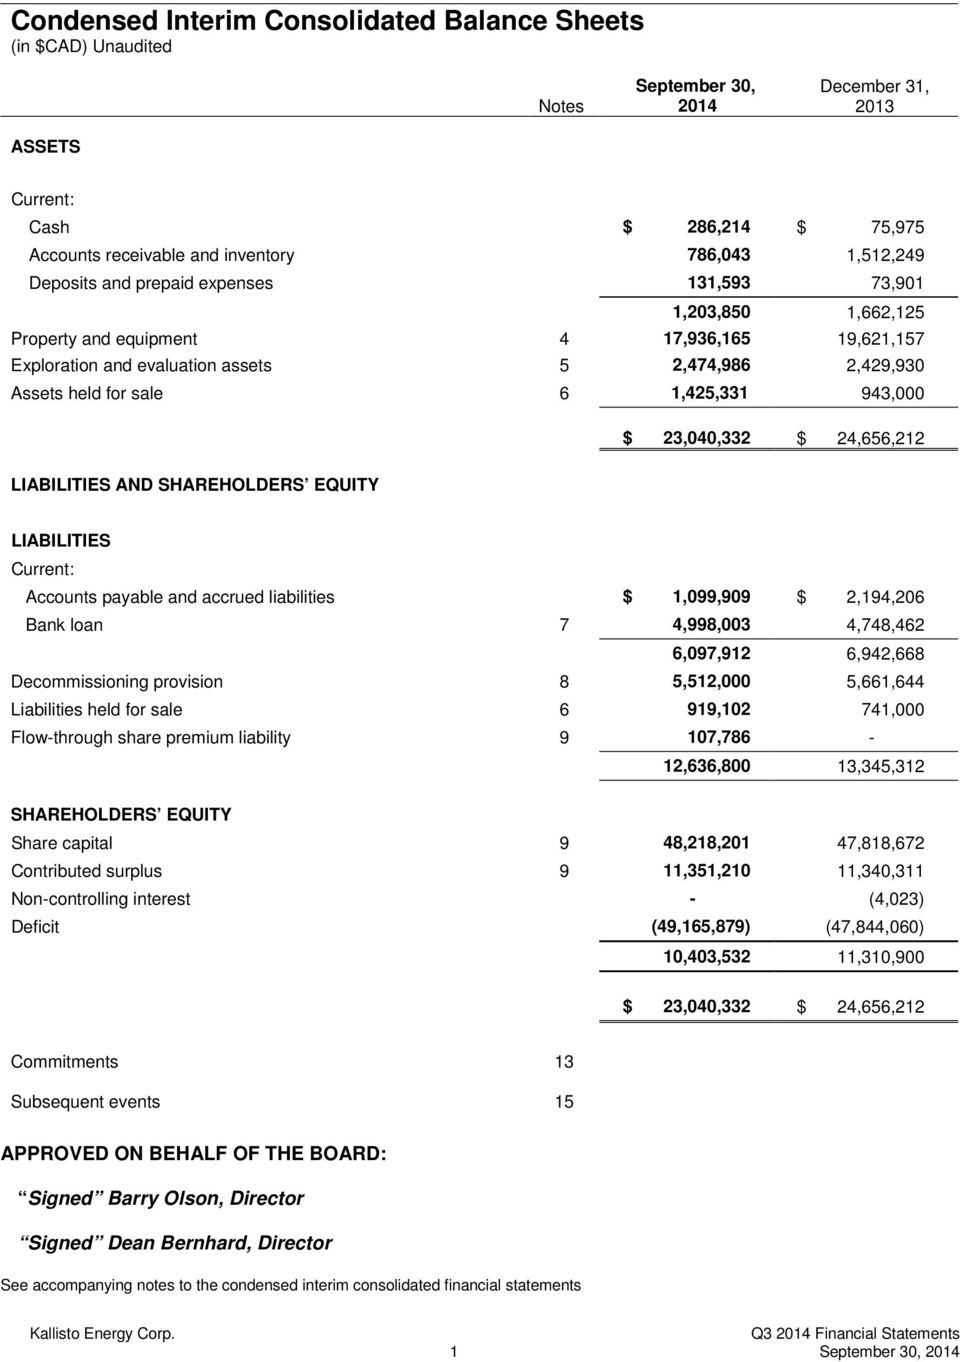 6 1,425,331 943,000 $ 23,040,332 $ 24,656,212 LIABILITIES AND SHAREHOLDERS EQUITY LIABILITIES Current: Accounts payable and accrued liabilities $ 1,099,909 $ 2,194,206 Bank loan 7 4,998,003 4,748,462